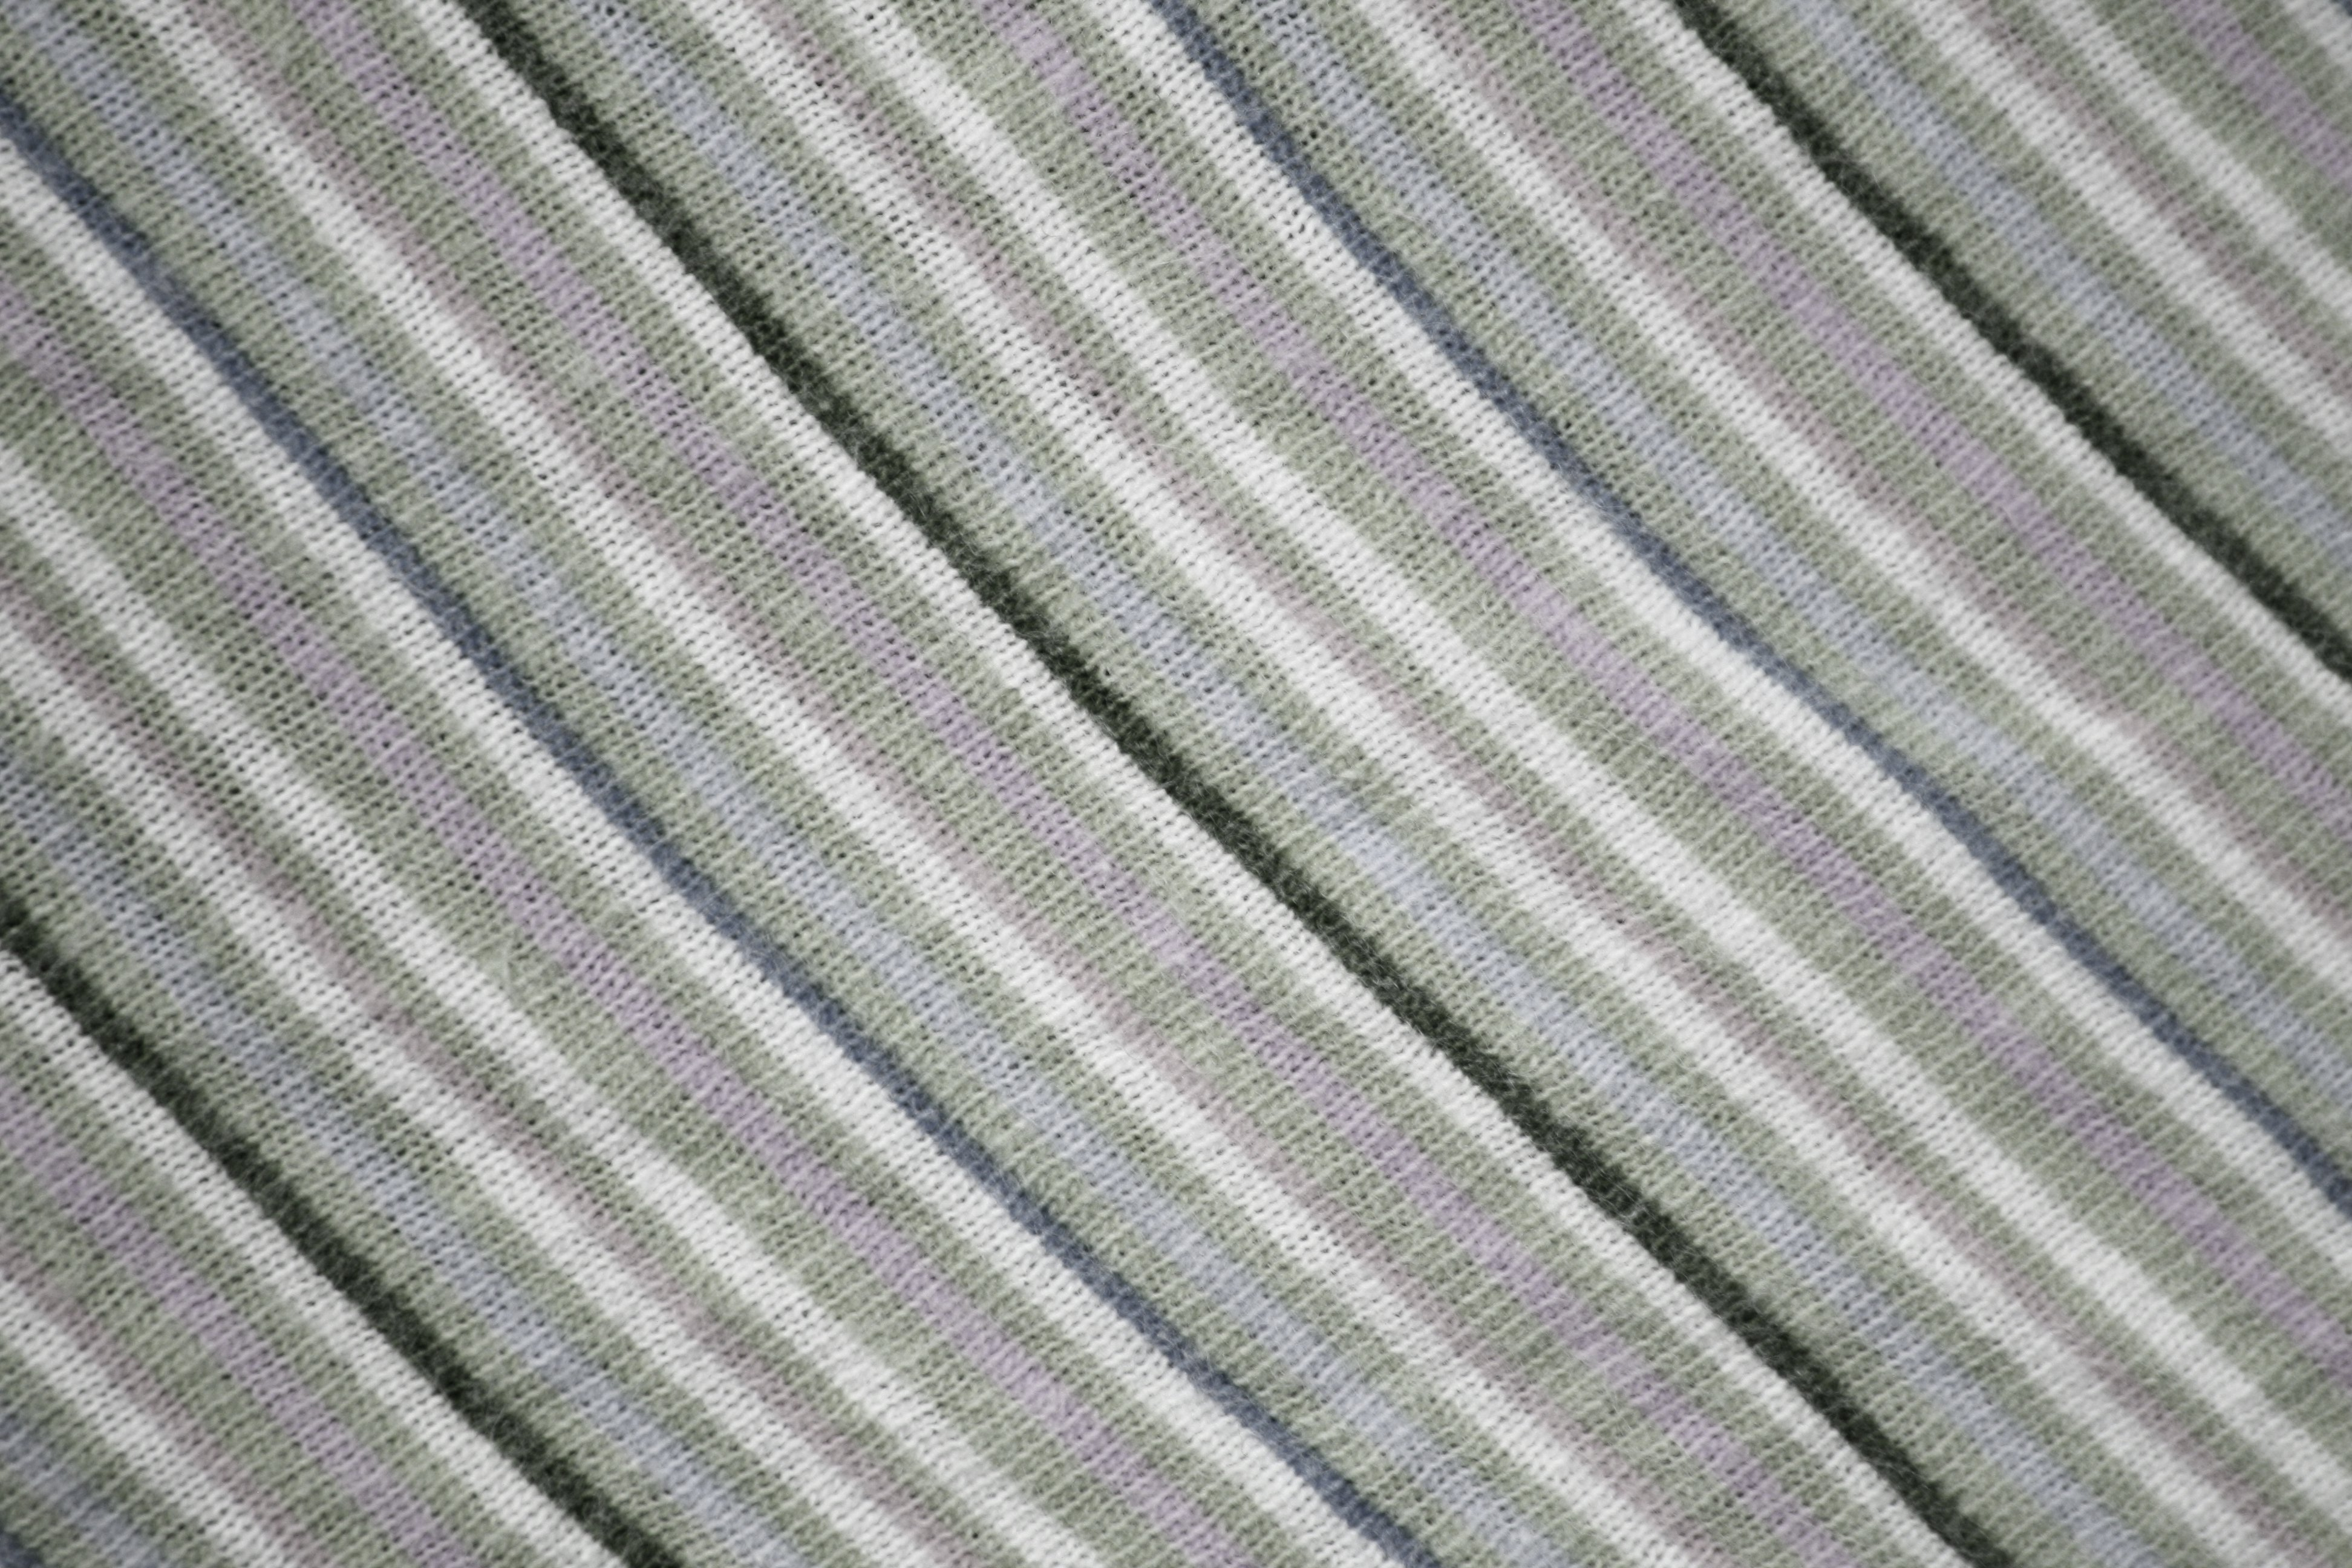 Diagonally Striped Knit Fabric Texture Sage Green And